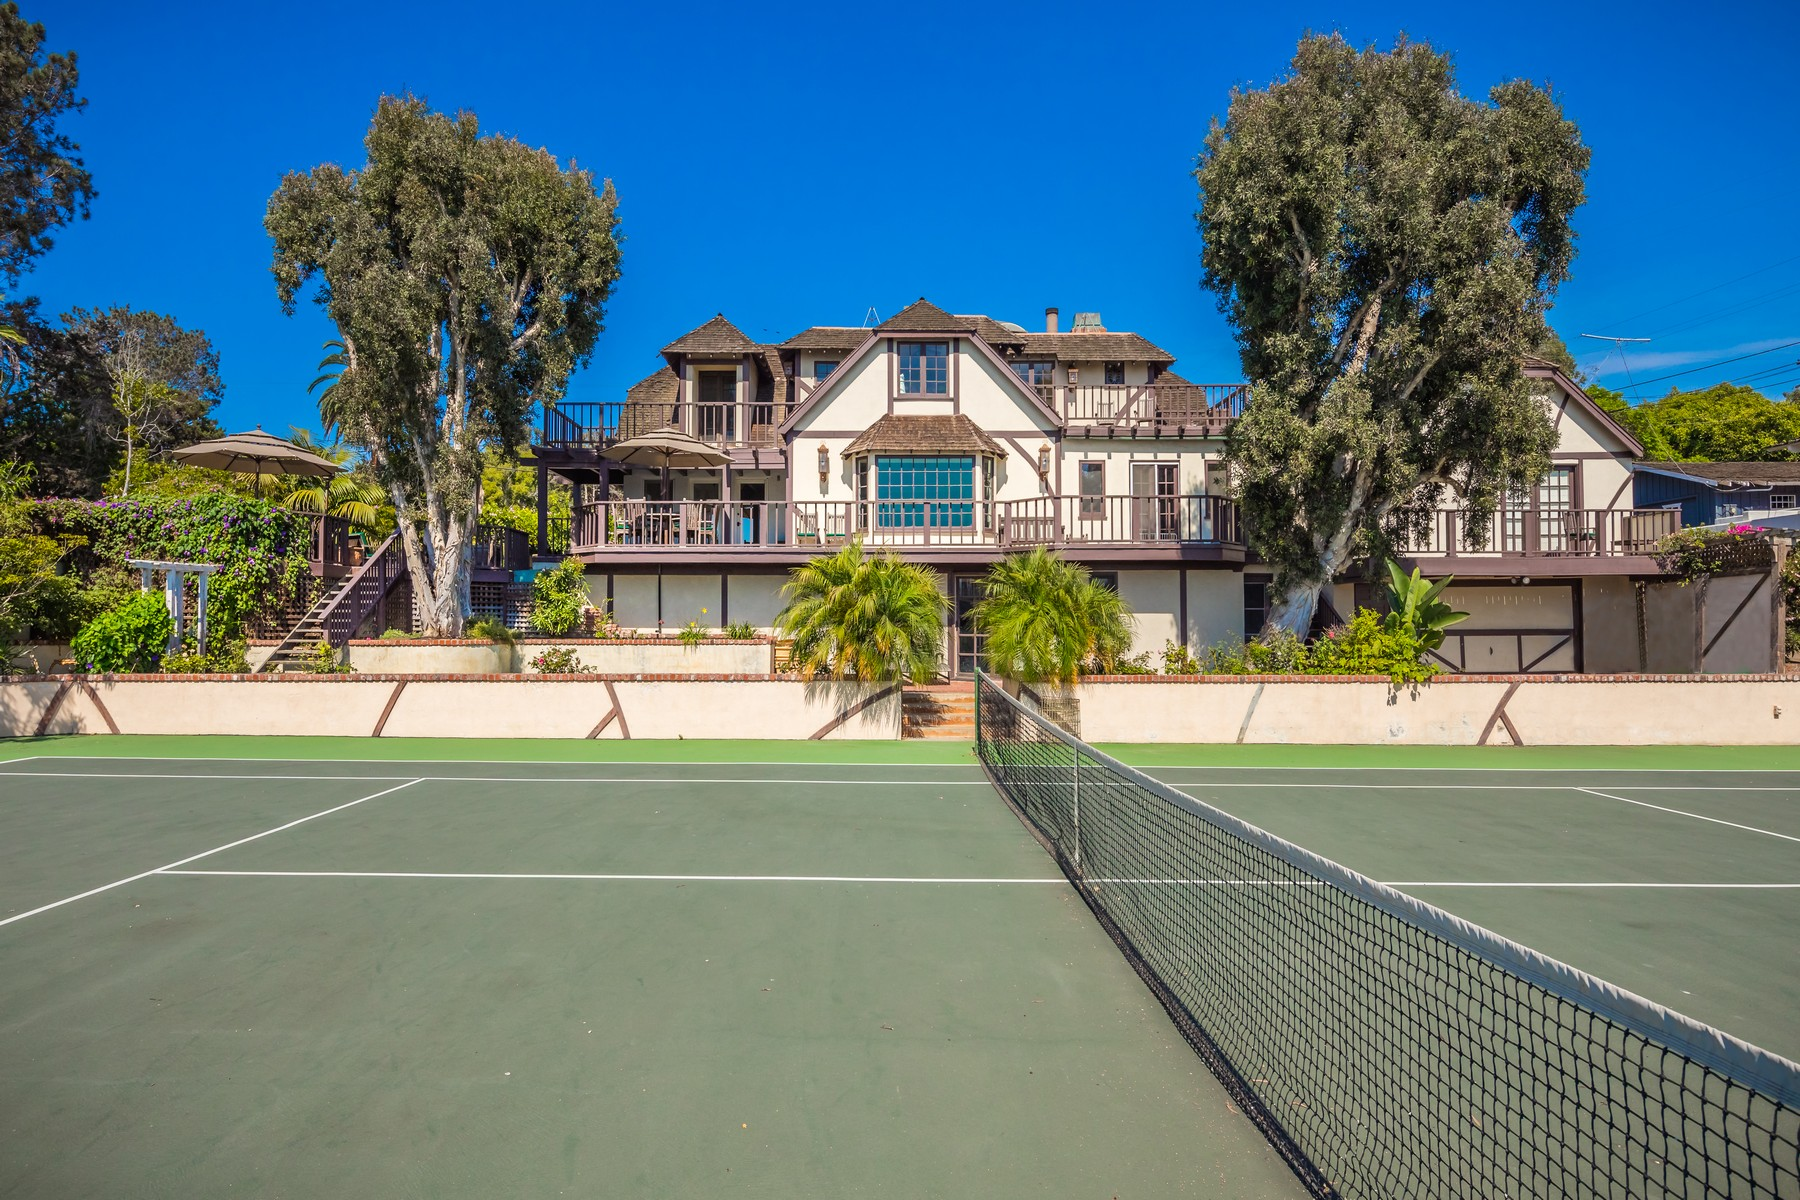 Single Family Home for Active at 355 14th St 355 14th St Del Mar, California 92014 United States